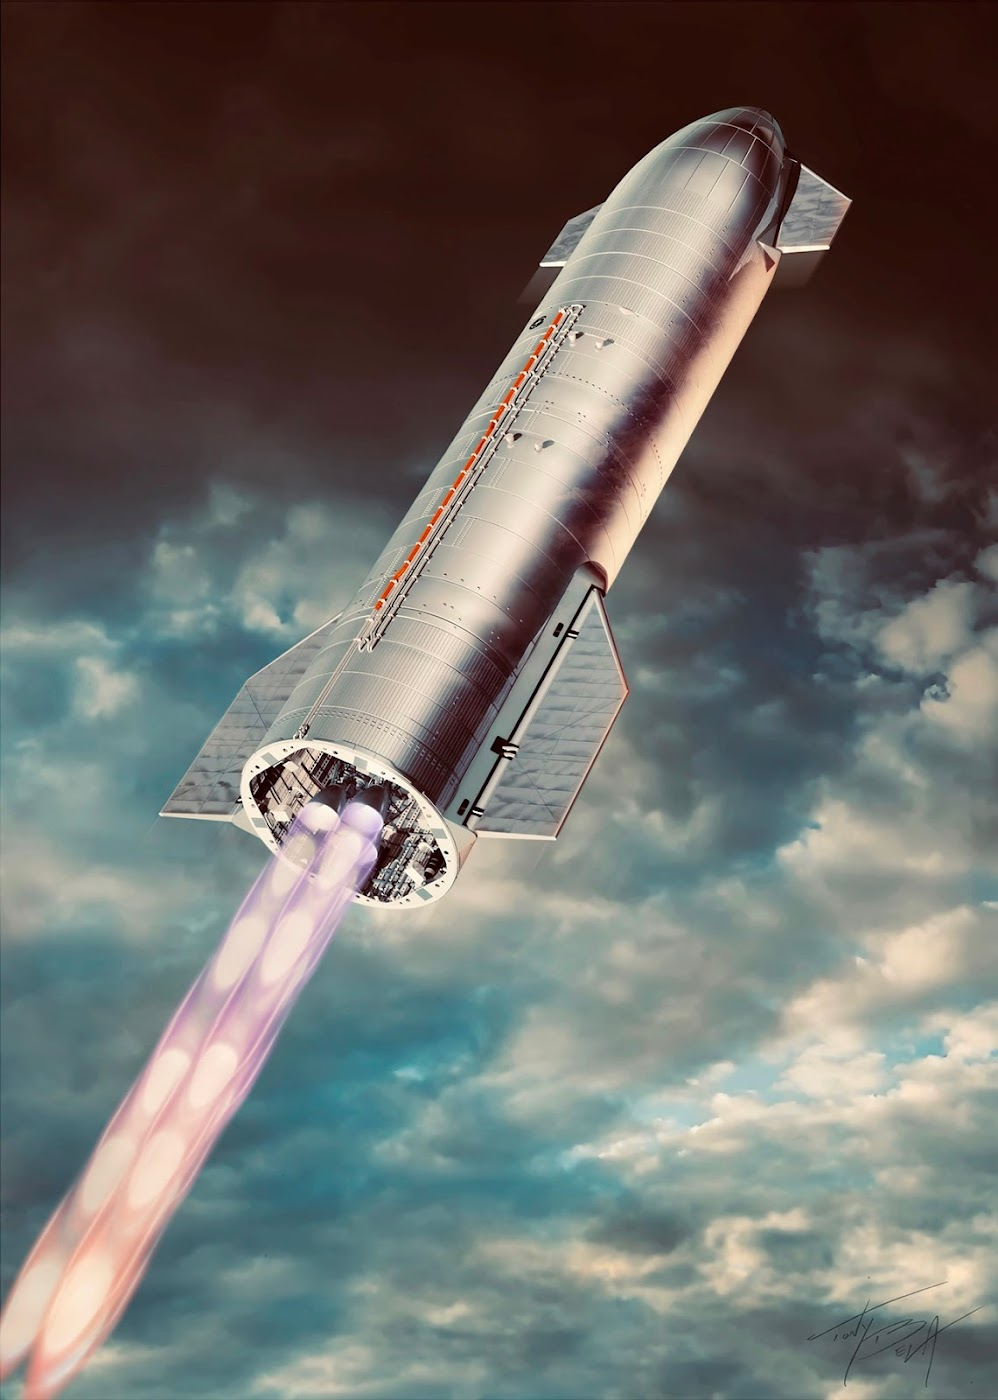 Poster of SpaceX's Starship SN8 ascent by Tony Bela